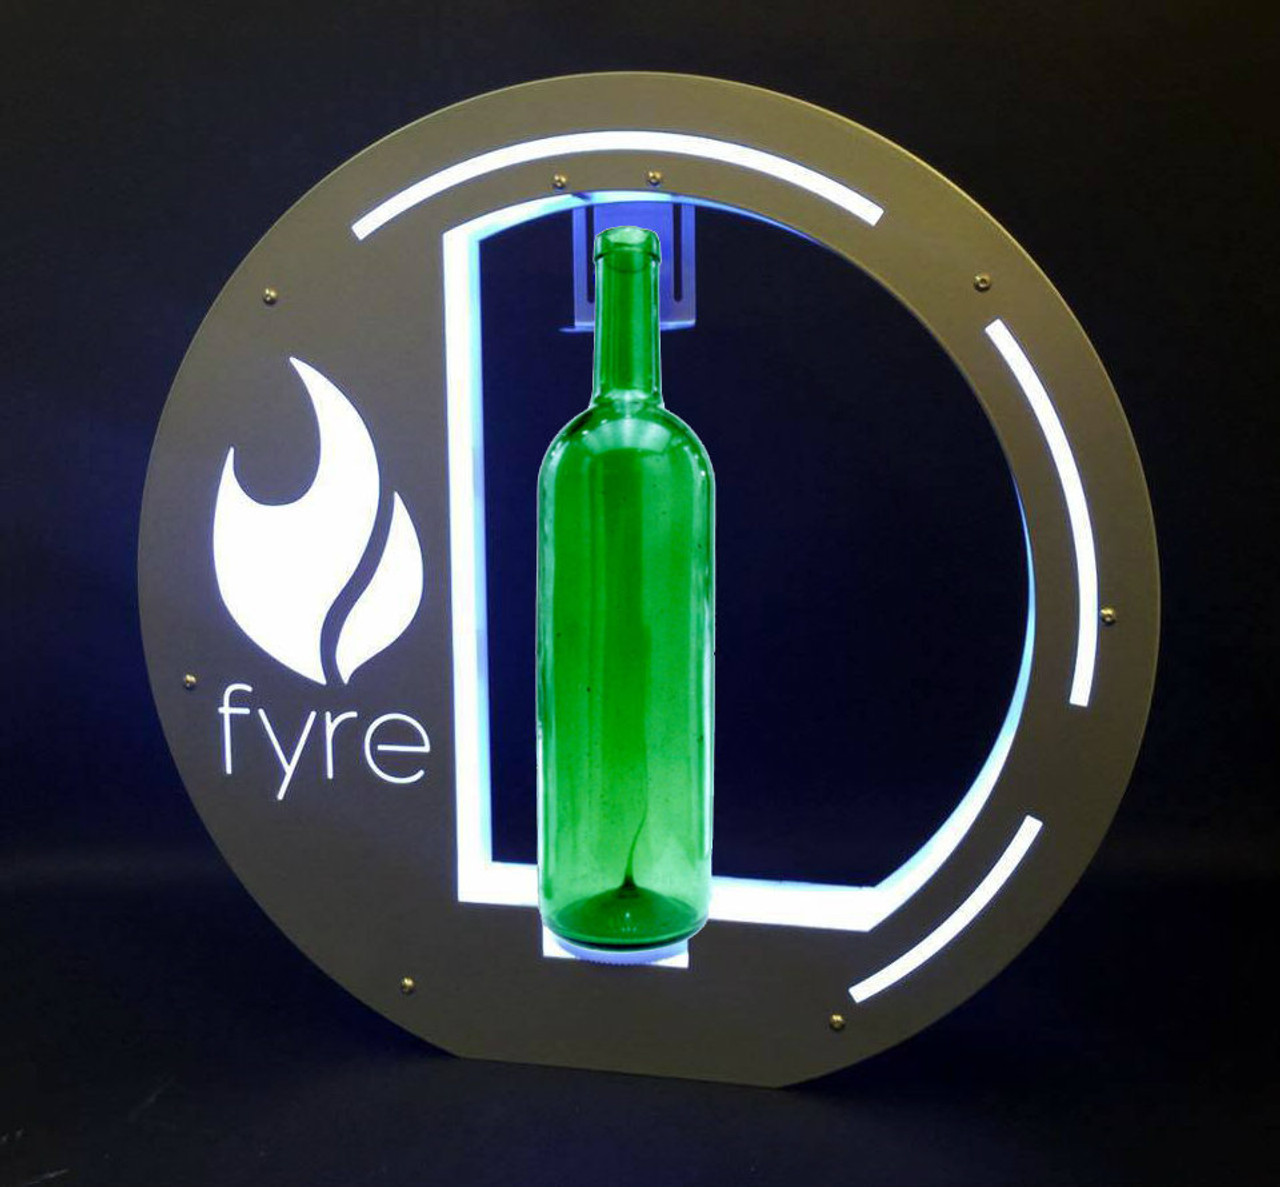 VIP, Liquor,Bottle Service Tray, bottleService,Bottle Service,Tray, Caddie, Carrier, Presenter, Caddy, VIP tray, Custom, Personalized, Liquor Tray, Champagne, Champagne Tray, LED Tray, delivery, Nightclub, LEDTray, Light up, illuminated,custom made, Logo,name, customized